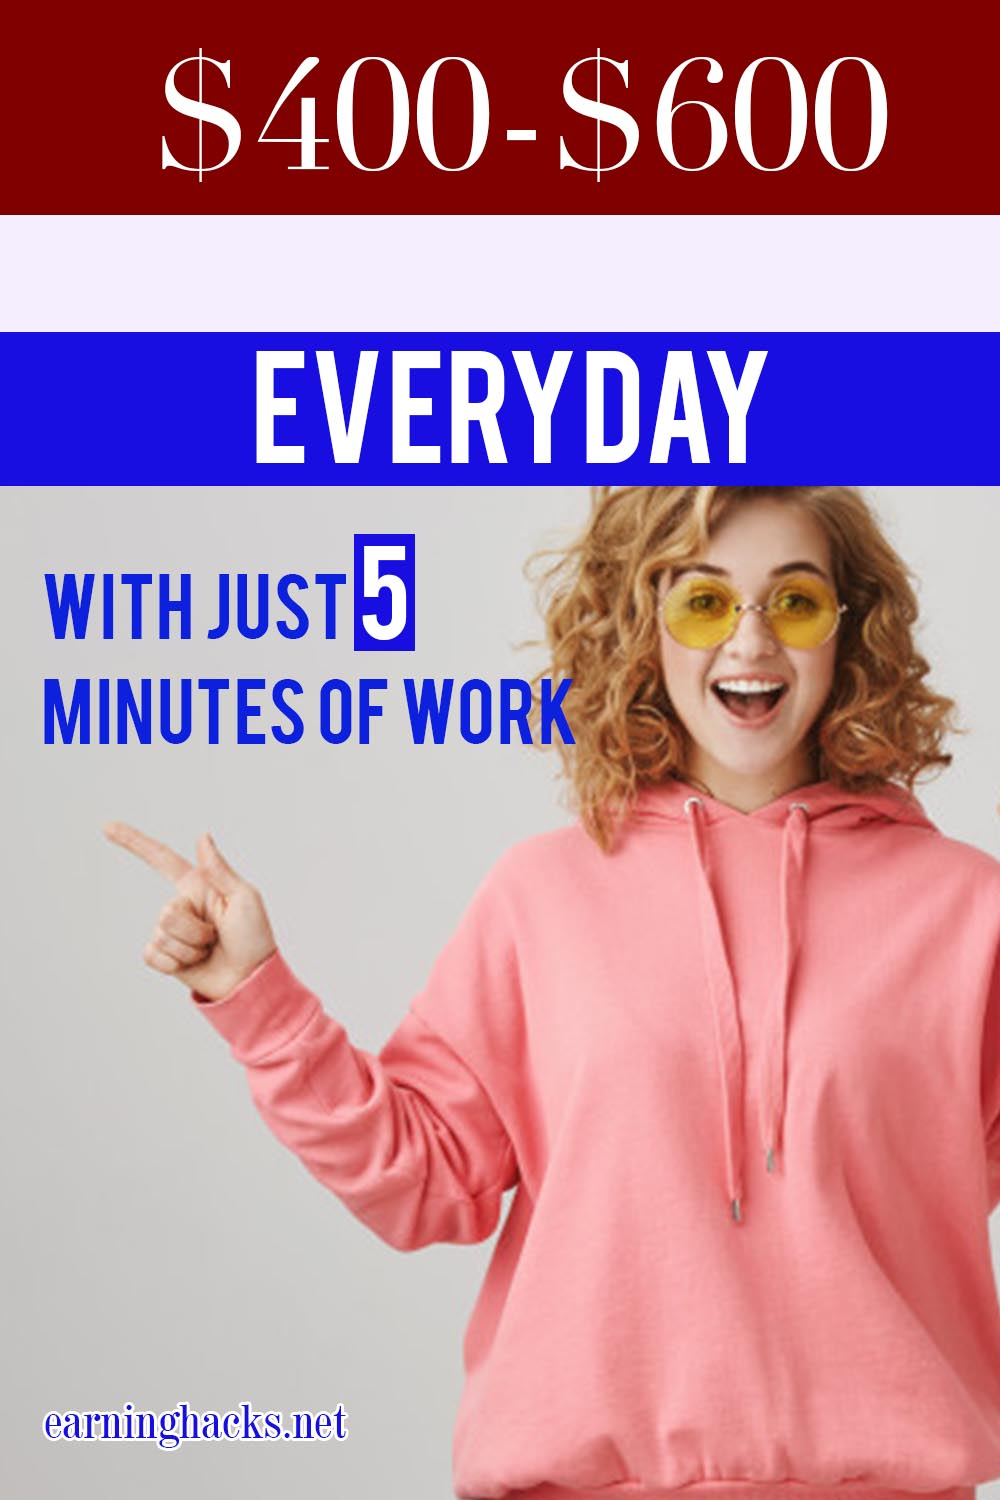 $400-$600 Everyday With Just 5 Minutes Of Work